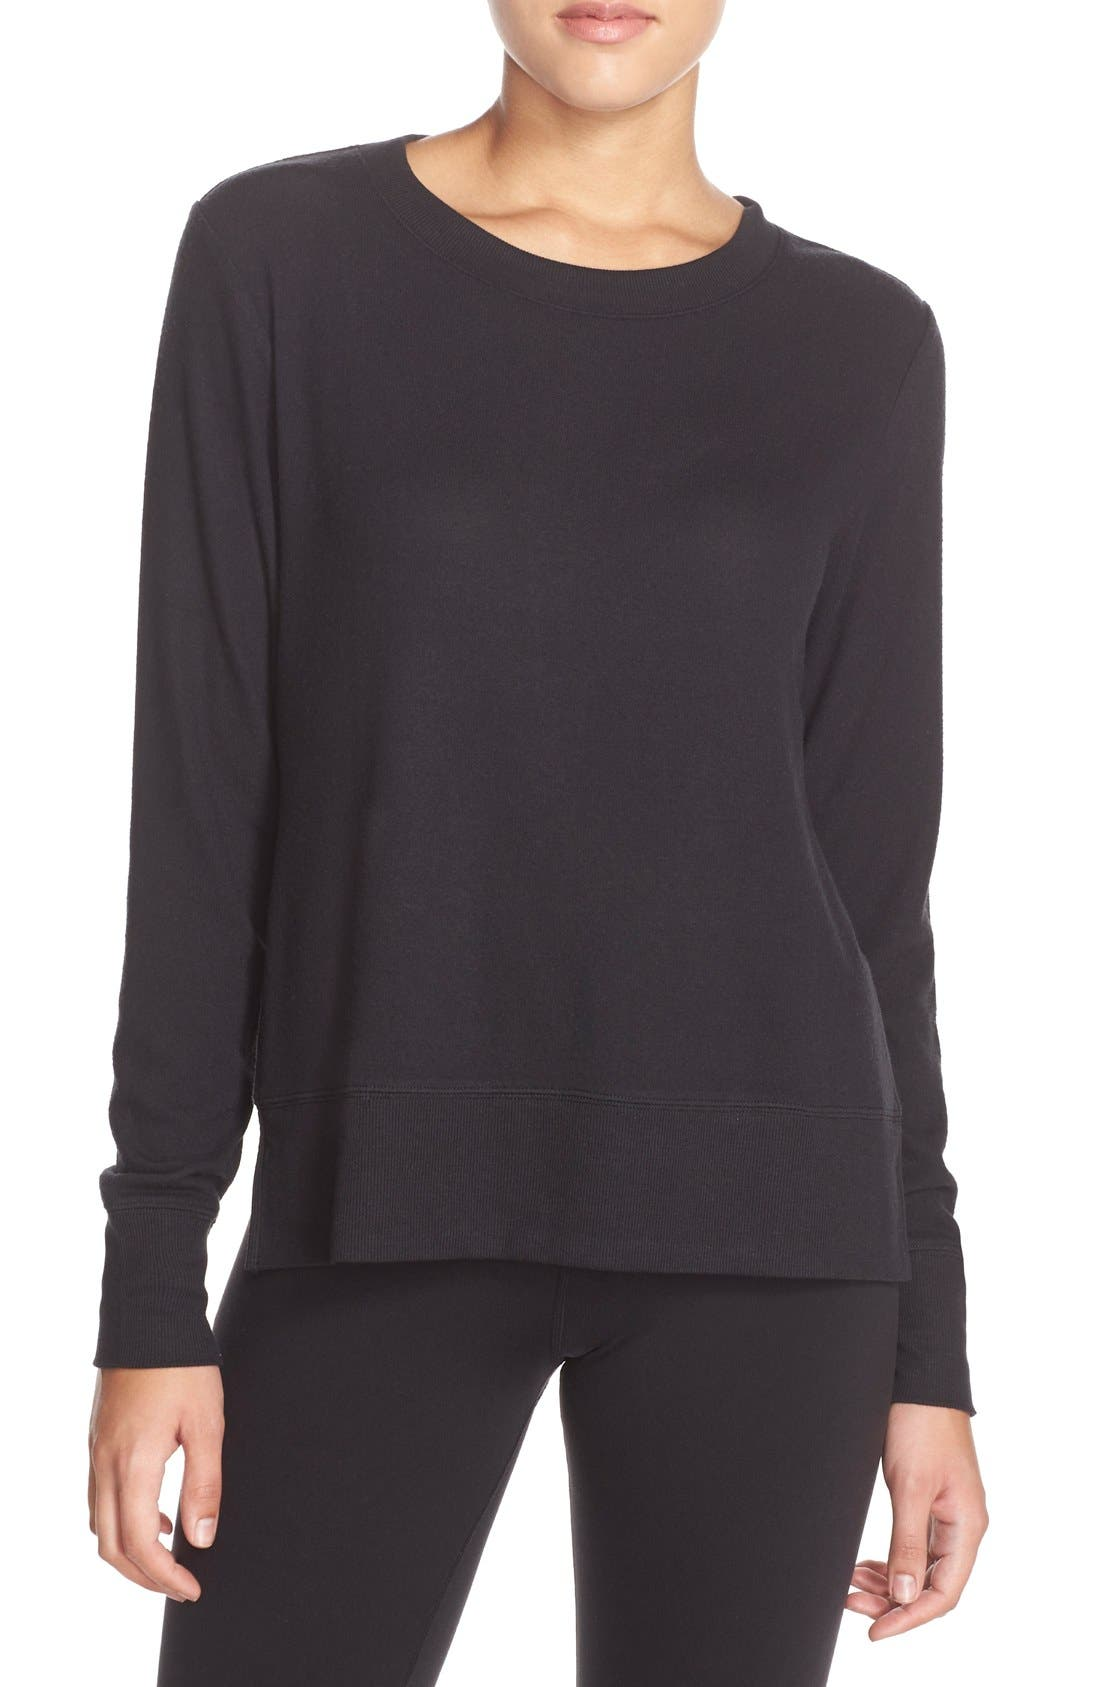 Main Image - Alo 'Glimpse' Long Sleeve Top